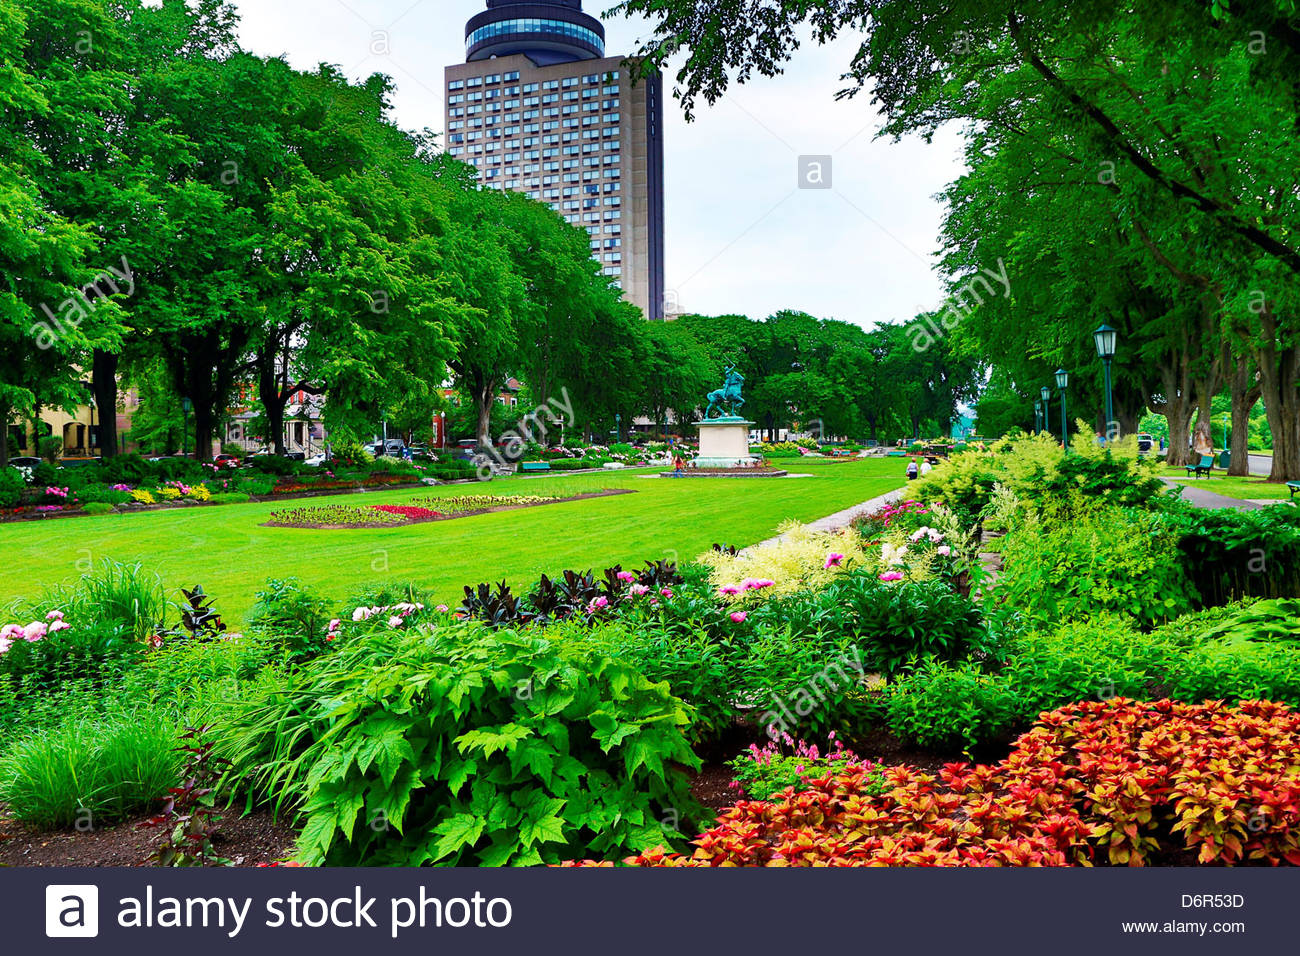 View Of The Joan Of Arc Garden In Quebec City, Quebec, Canada   Stock